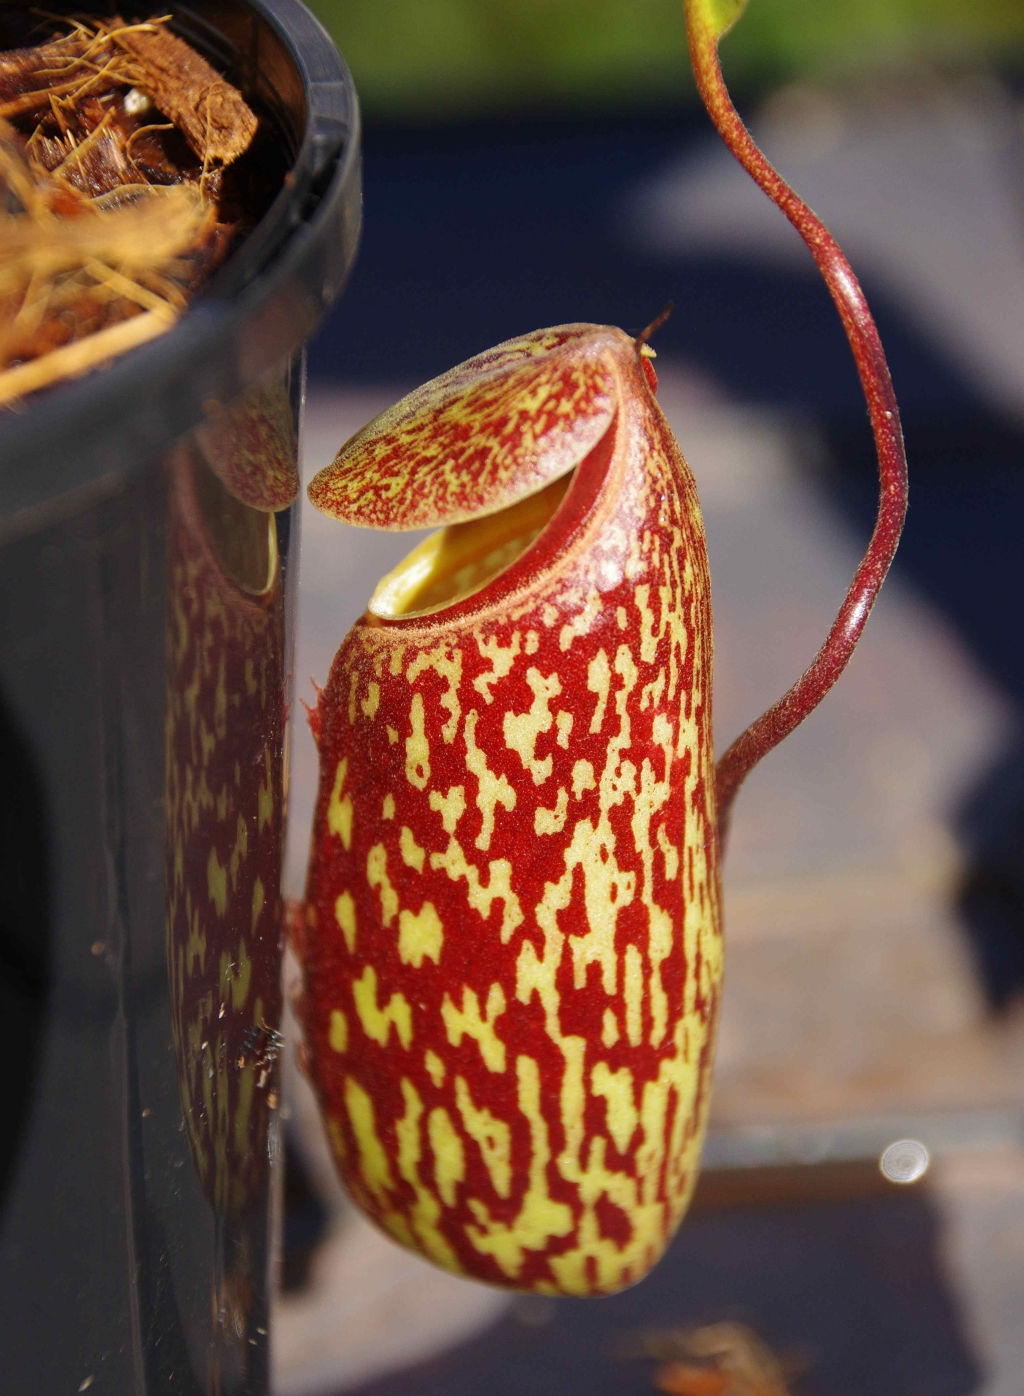 Nepenthes 'Red Leopard' a.k.a. Nepenthes ventricosa-squat x maxima